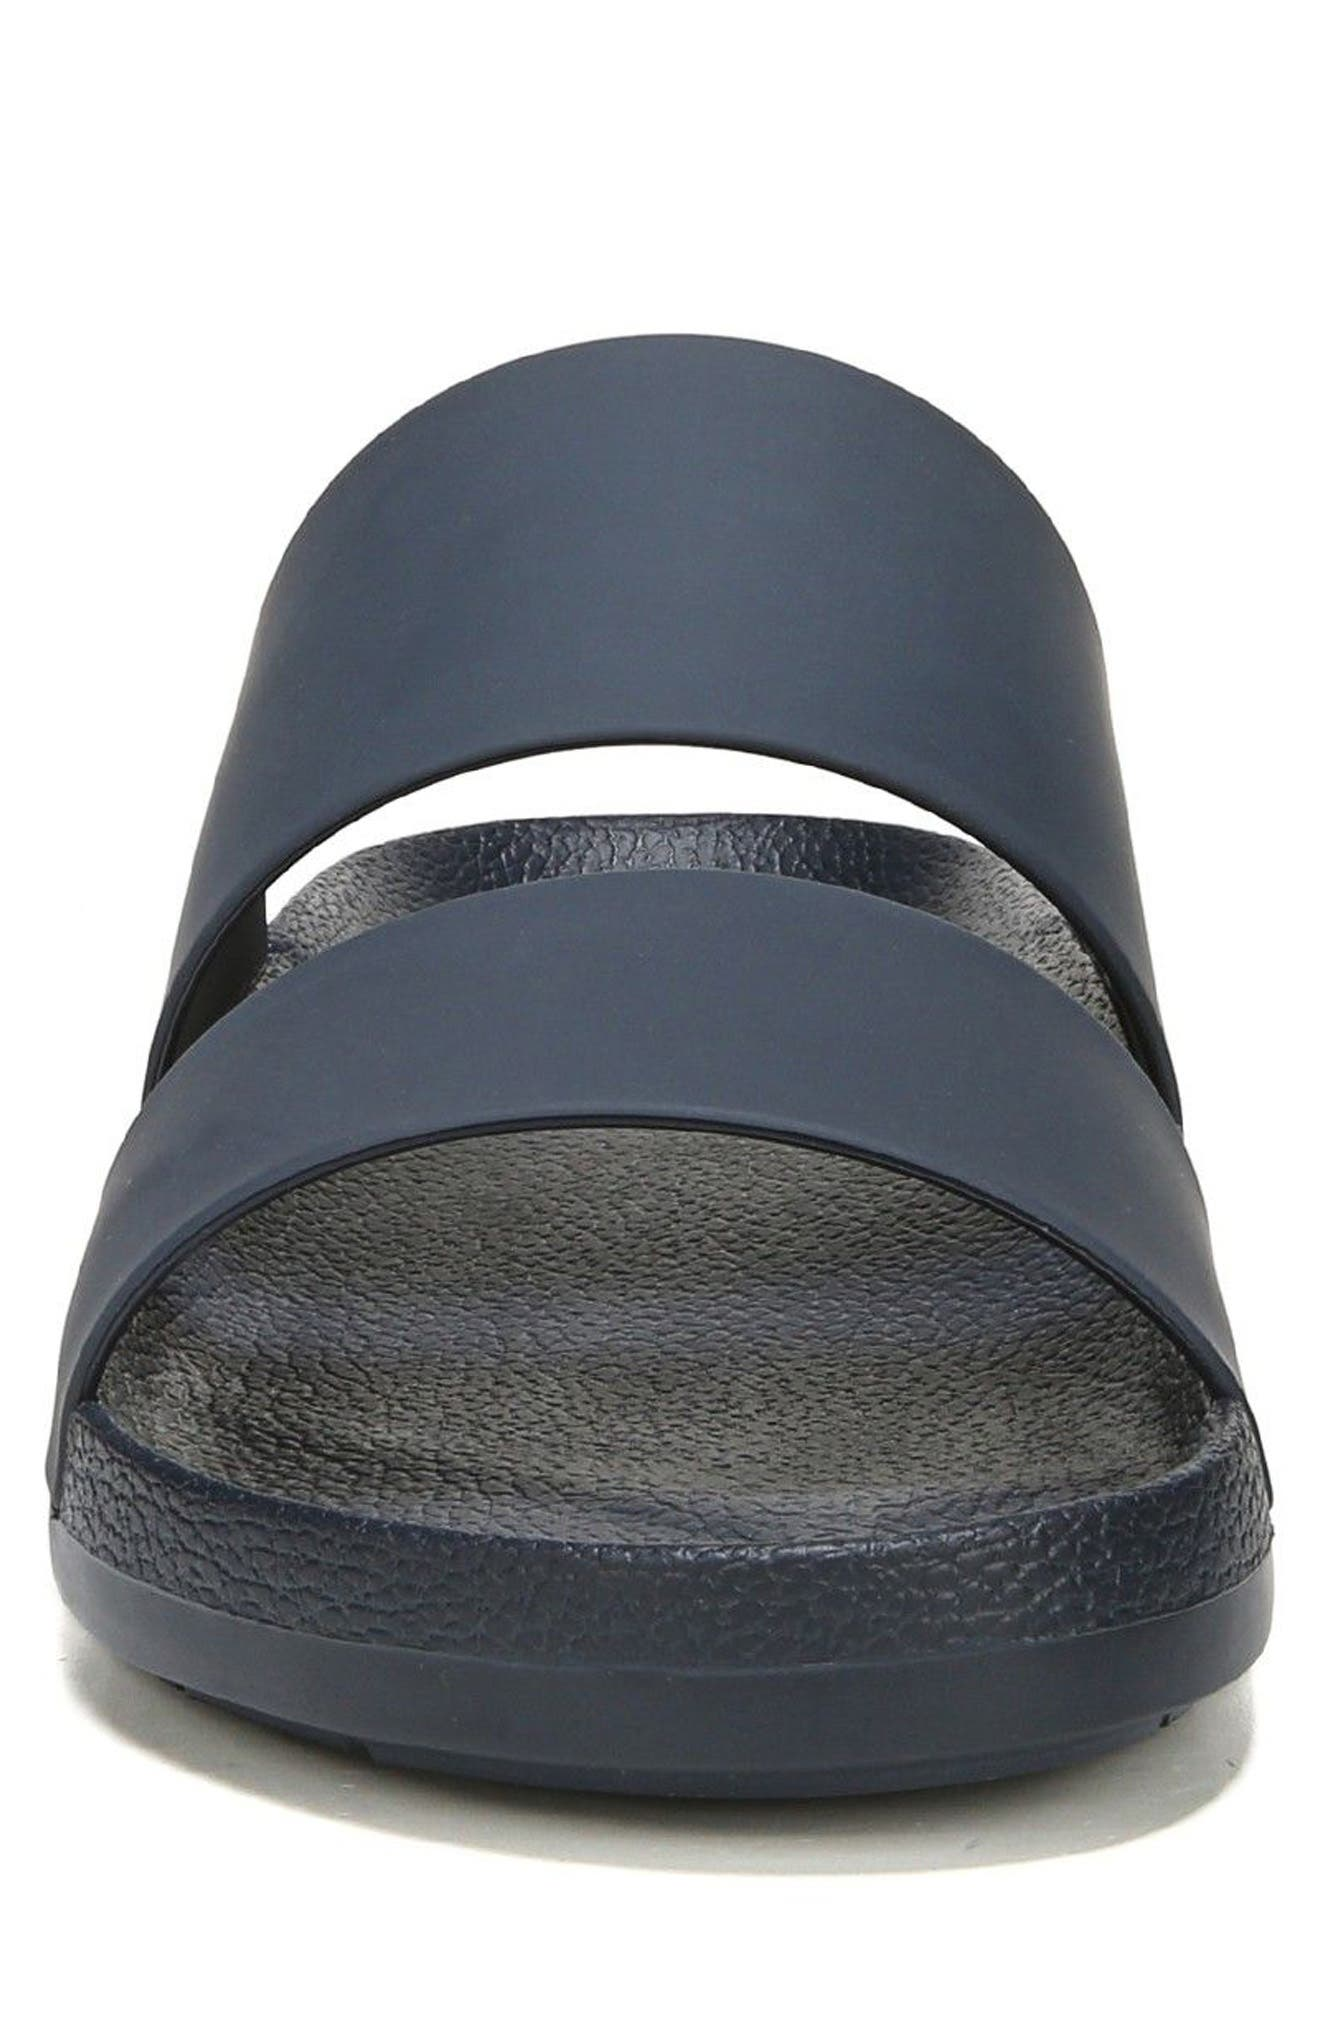 Mariner Slide Sandal,                             Alternate thumbnail 4, color,                             Coastal Blue